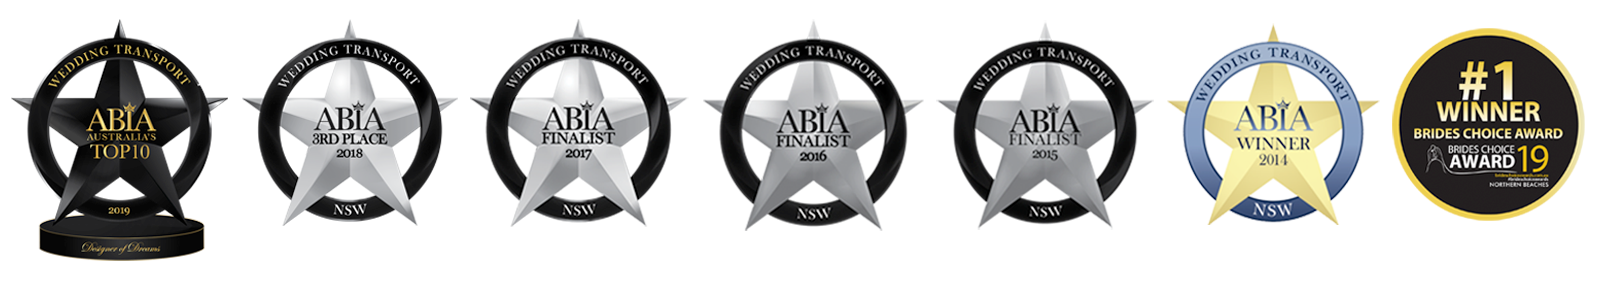 ABIA_Logos.png